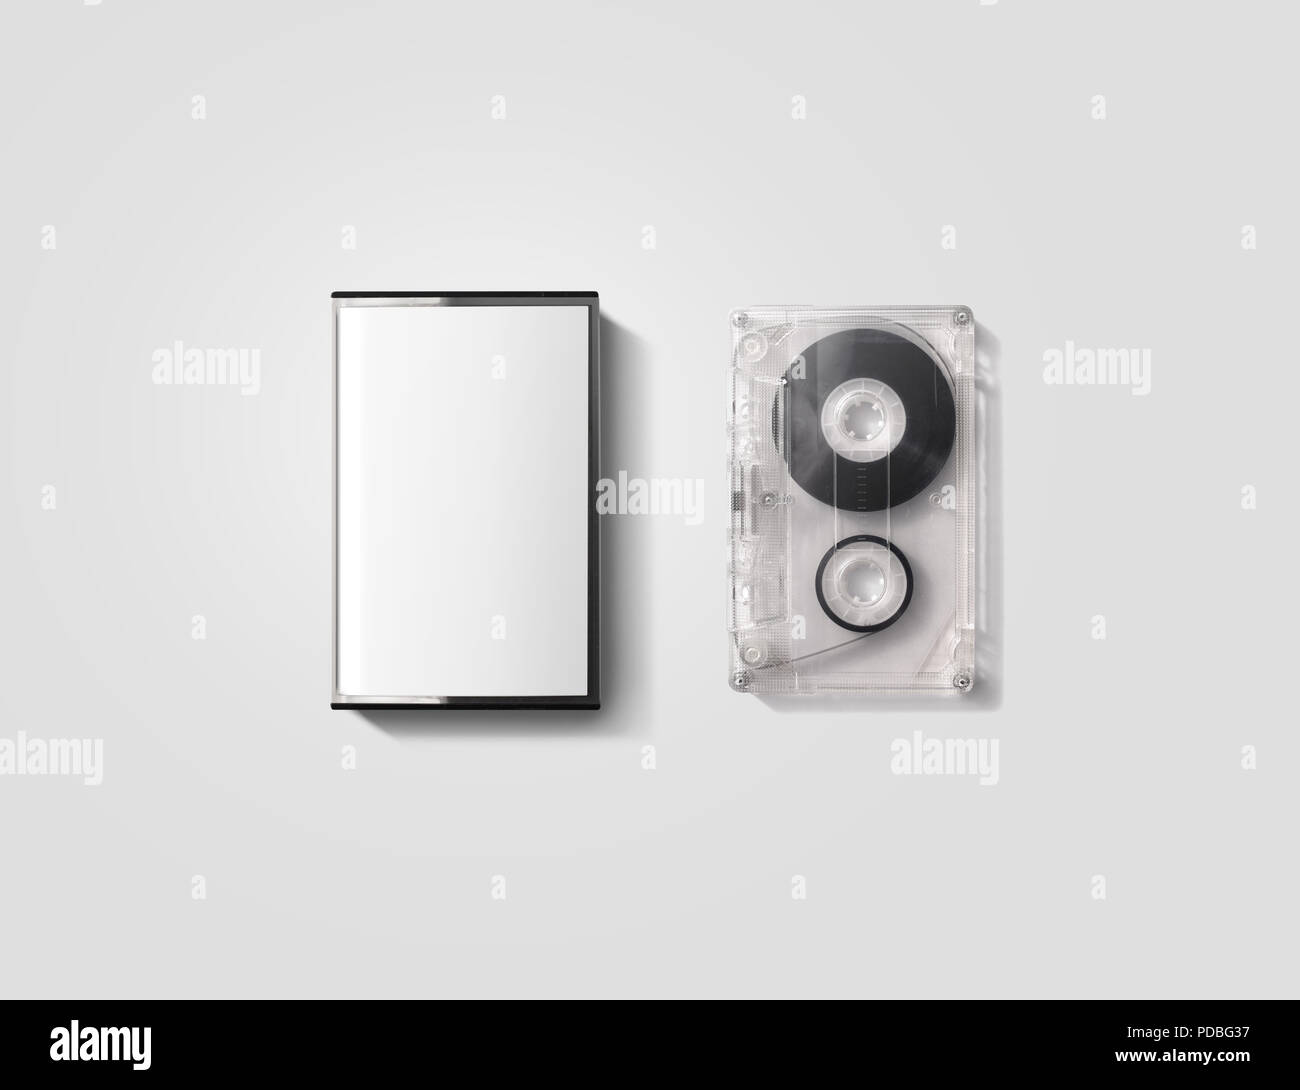 Blank cassette tape box design mockup, isolated, clipping path. Vintage cassete tape case with retro casset mock up. Plastic analog magnetic tape casete clear packaging template. Mixtape box cover. - Stock Image